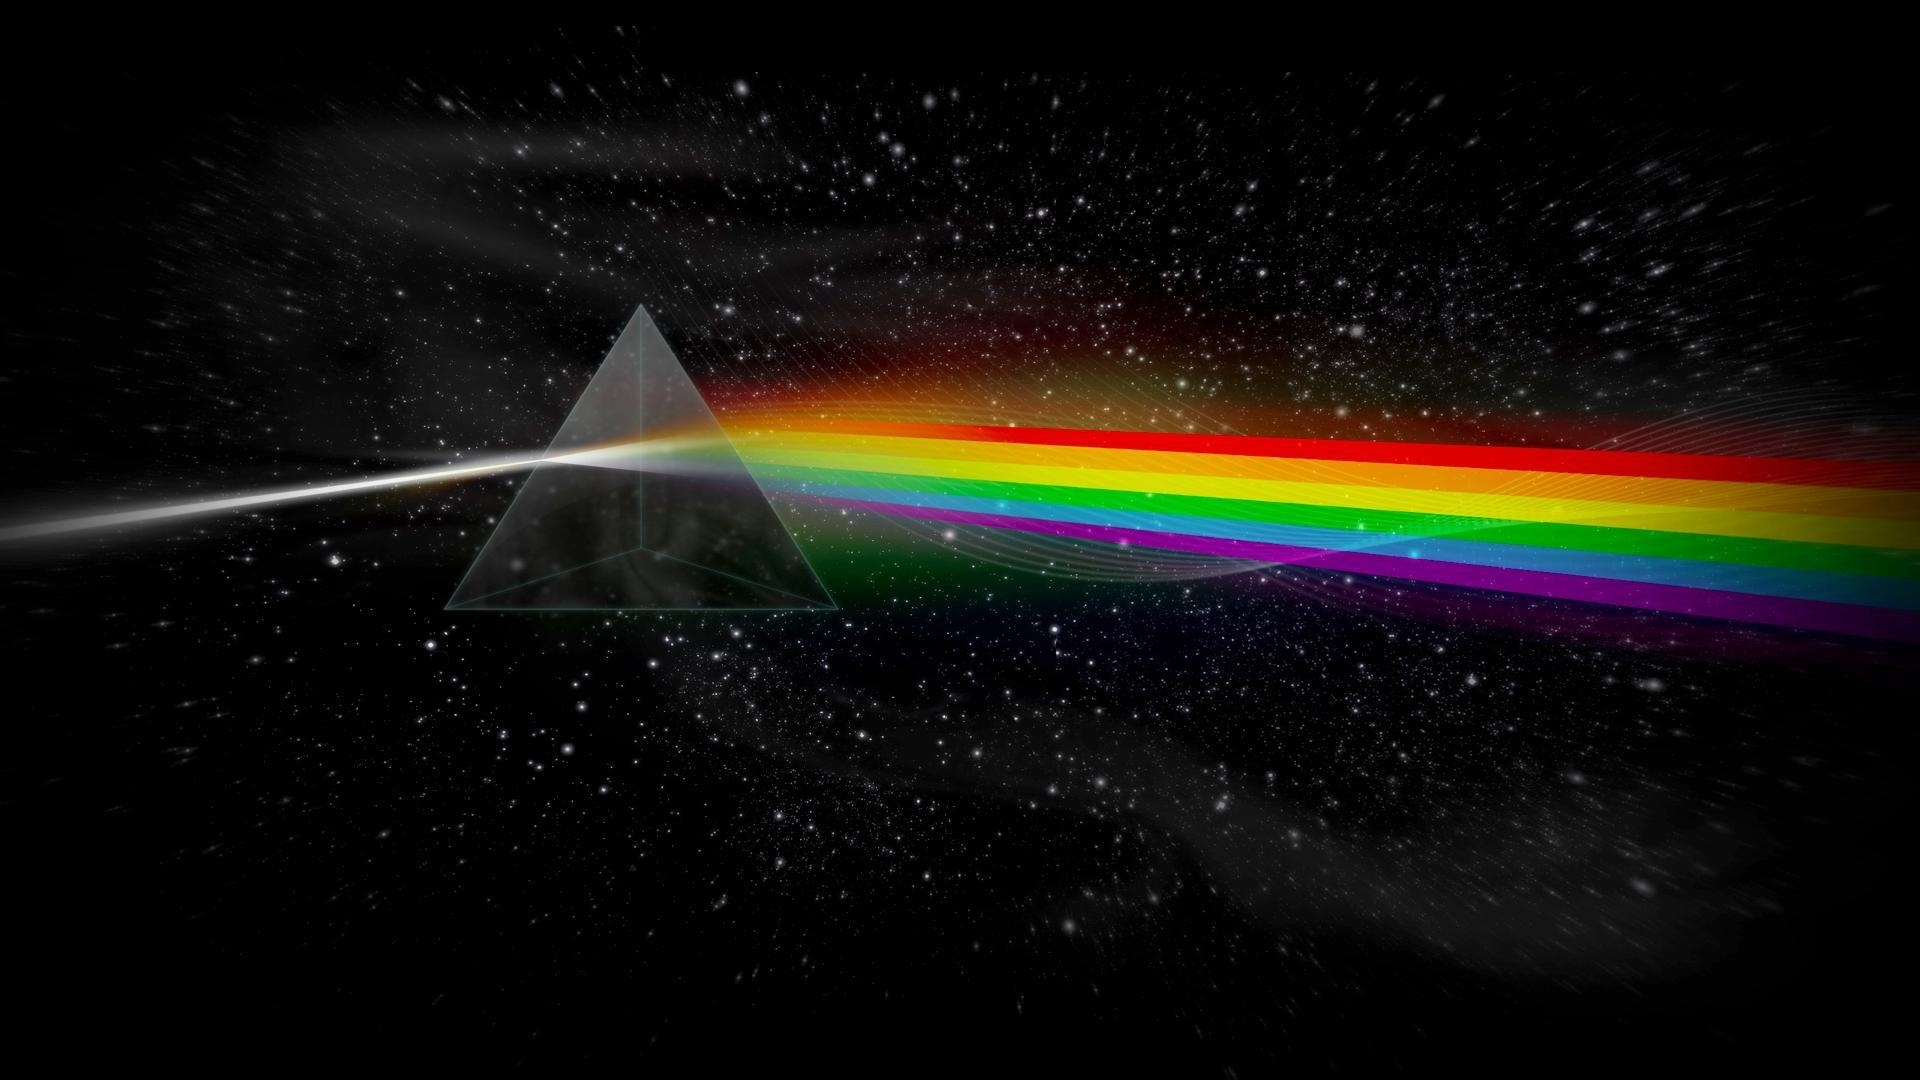 10 Latest Dark Side Of The Moon Wallpaper 1920X1080 FULL HD 1080p For PC Background